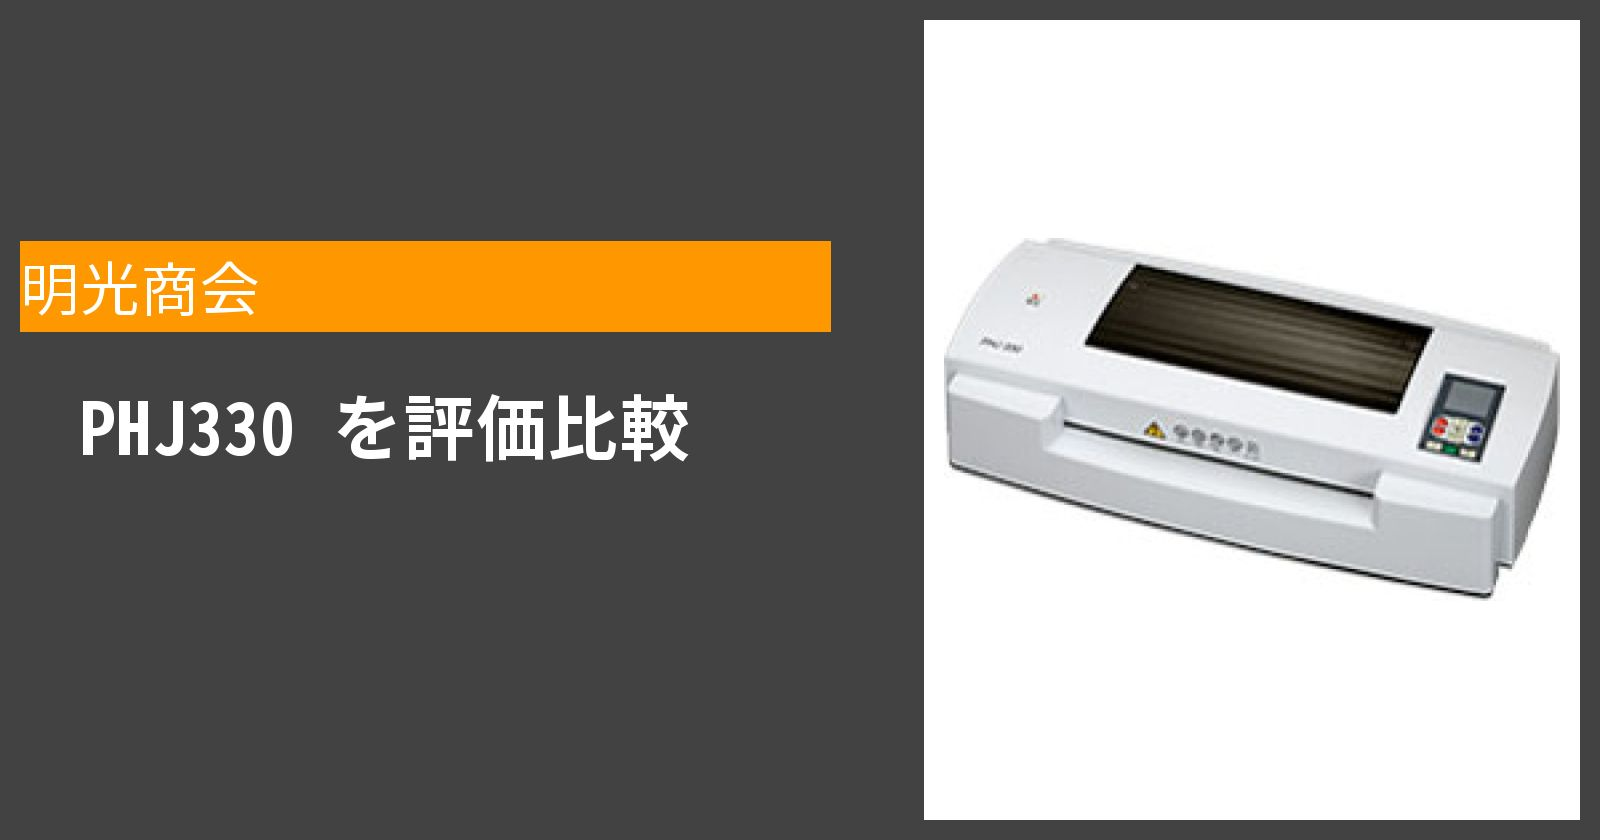 PHJ330を徹底評価